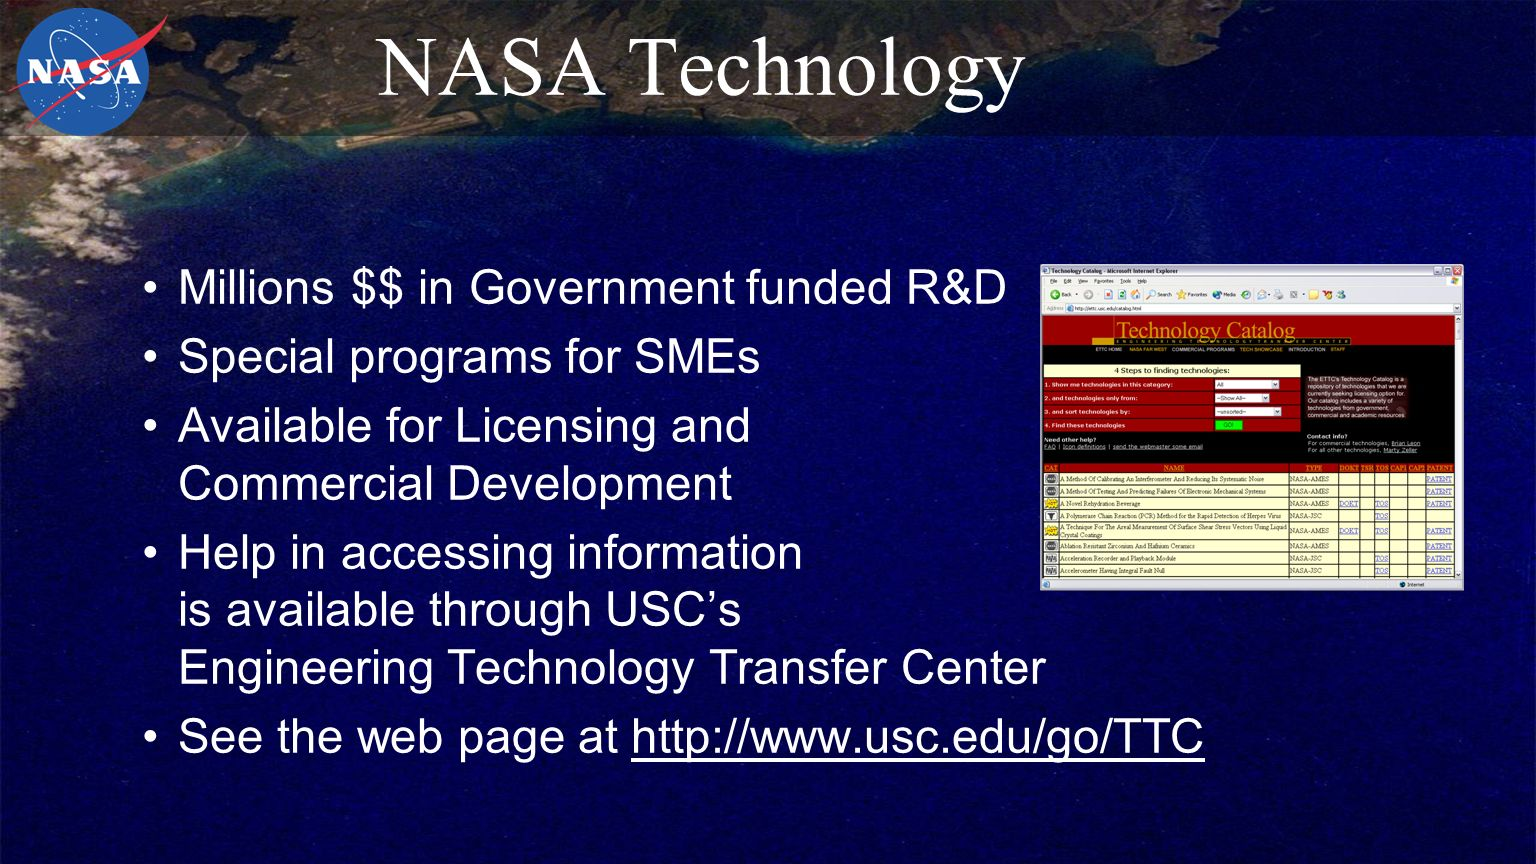 NASA Technology Millions $$ in Government funded R&D Special programs for SMEs Available for Licensing and Commercial Development Help in accessing information is available through USC's Engineering Technology Transfer Center See the web page at http://www.usc.edu/go/TTC